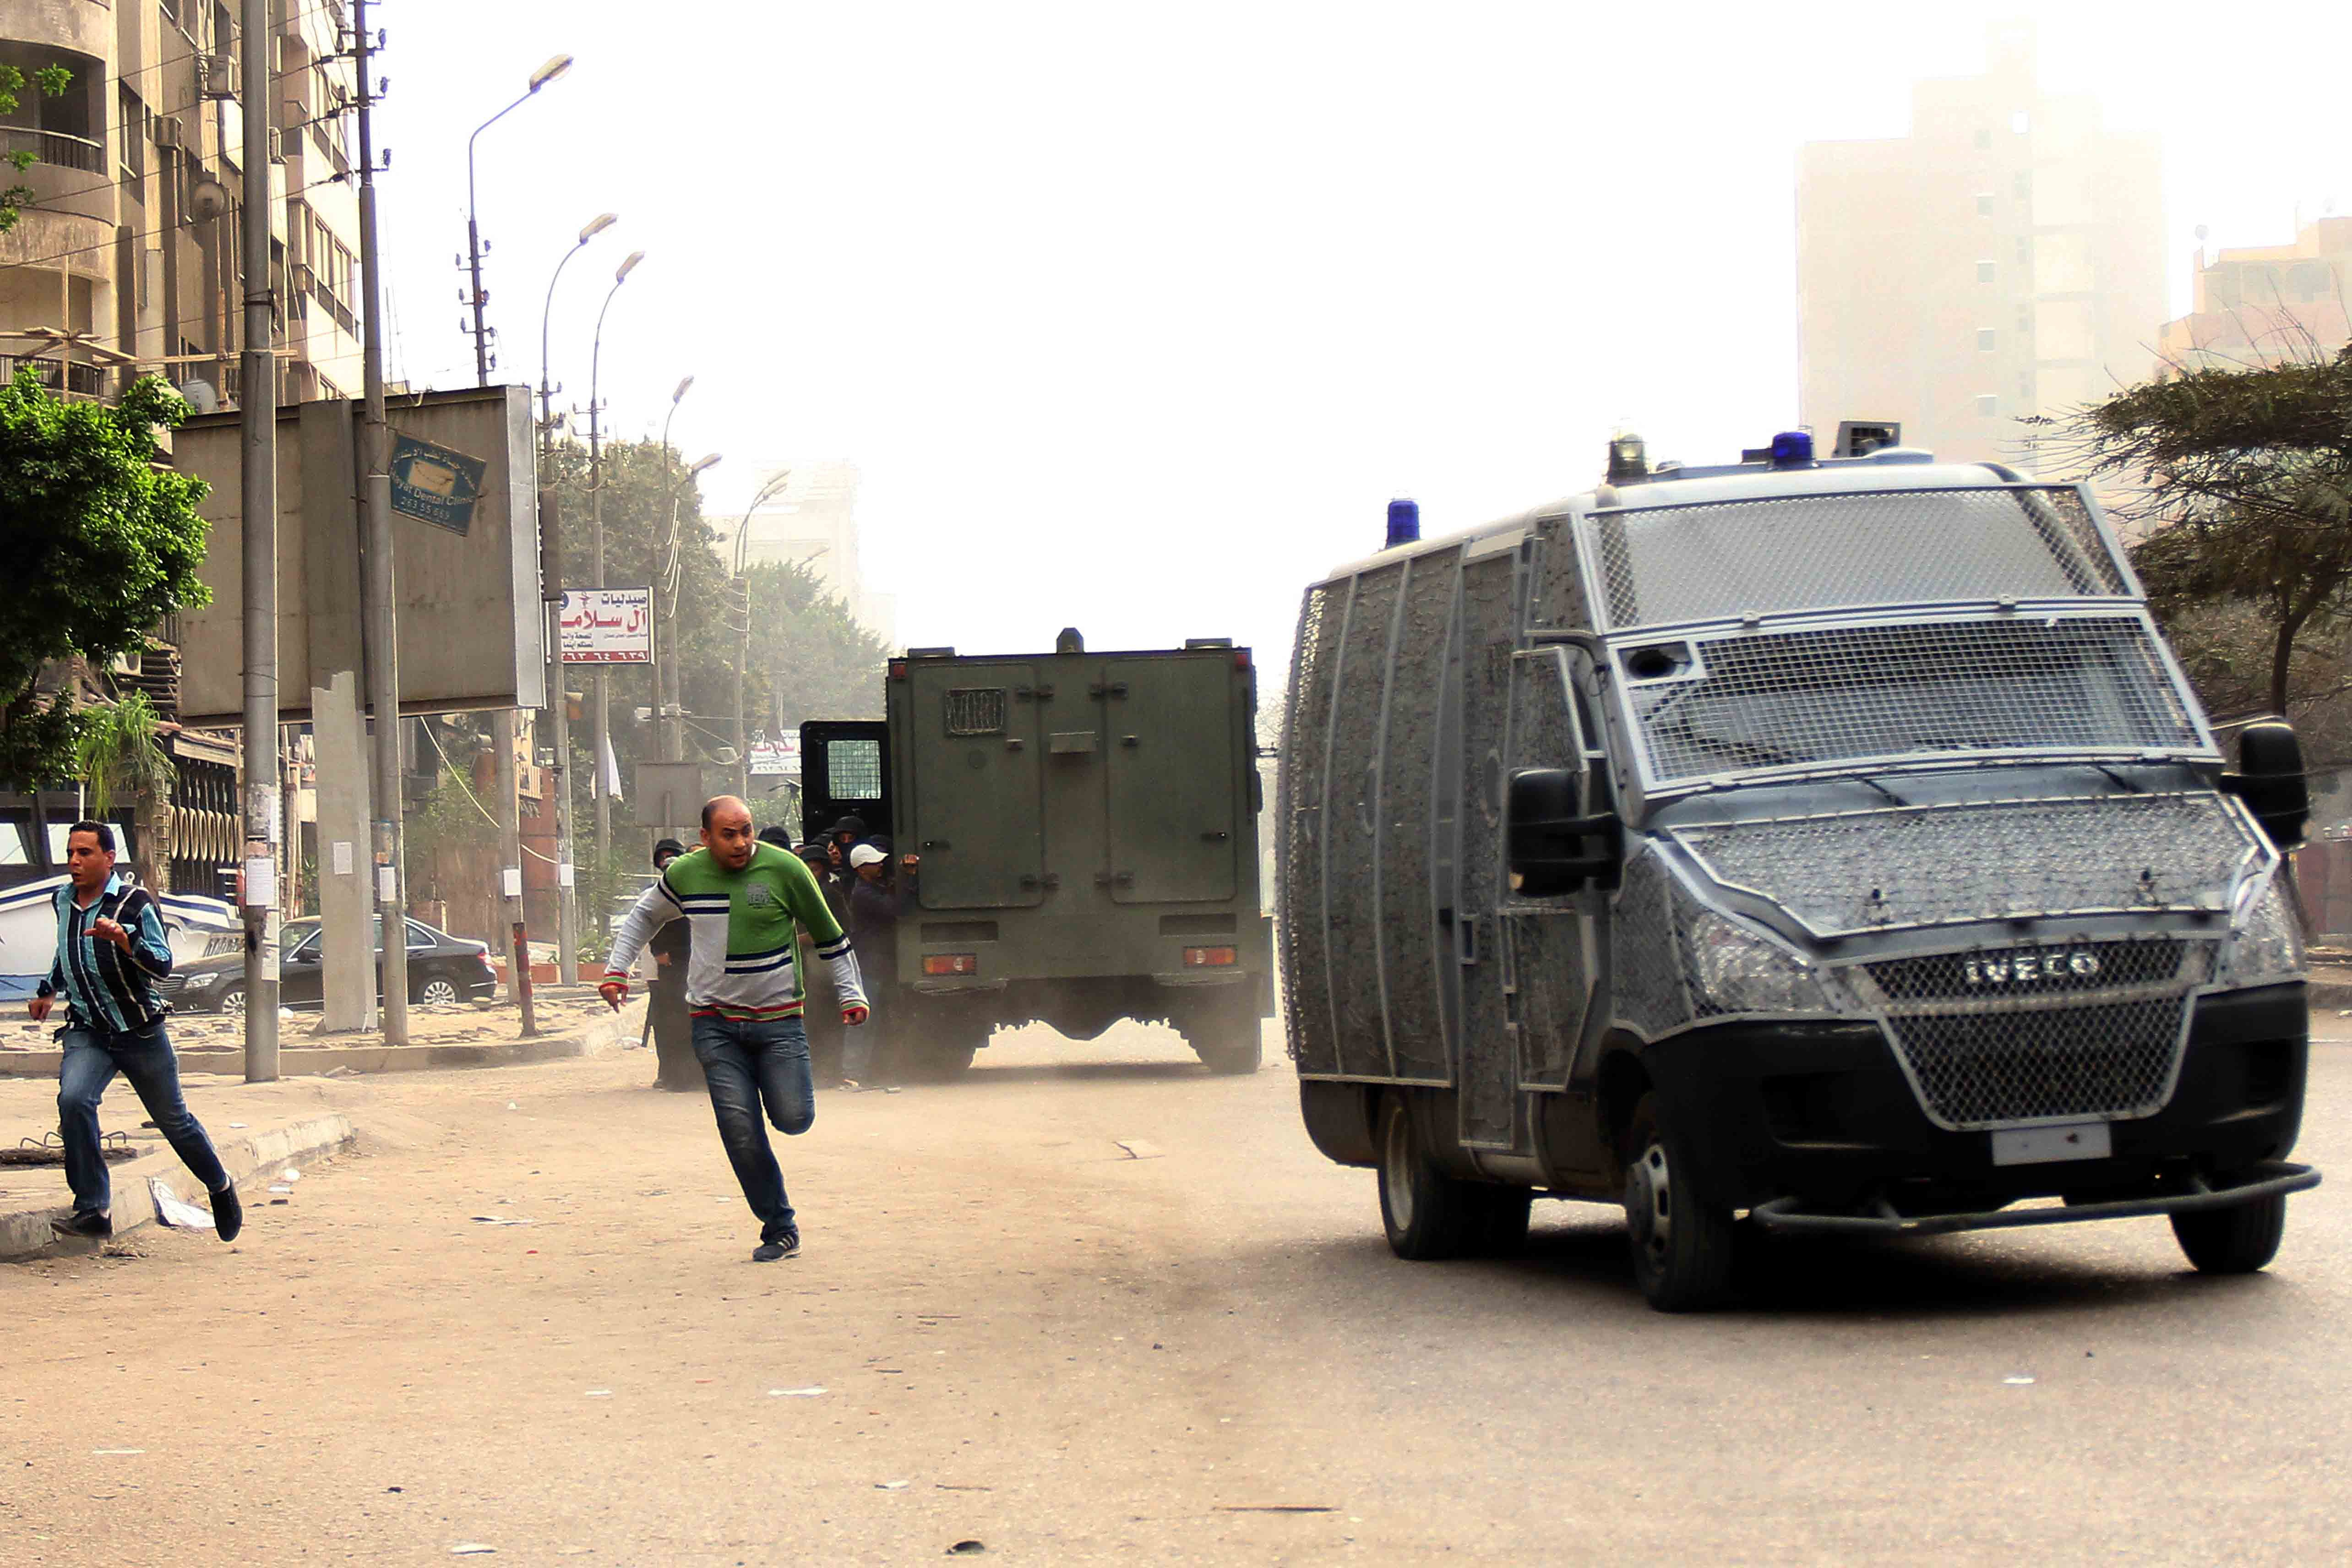 Egyptian protestors run for covers near police vehicles during clashes with Egyptian police following a demonstration in support of the Muslim Brotherhood and Egypt's ousted president Mohamed Morsi in the Ain Shams district of the capital Cairo on March 7, 2014.  (AFP PHOTO / AHMED TARANA)